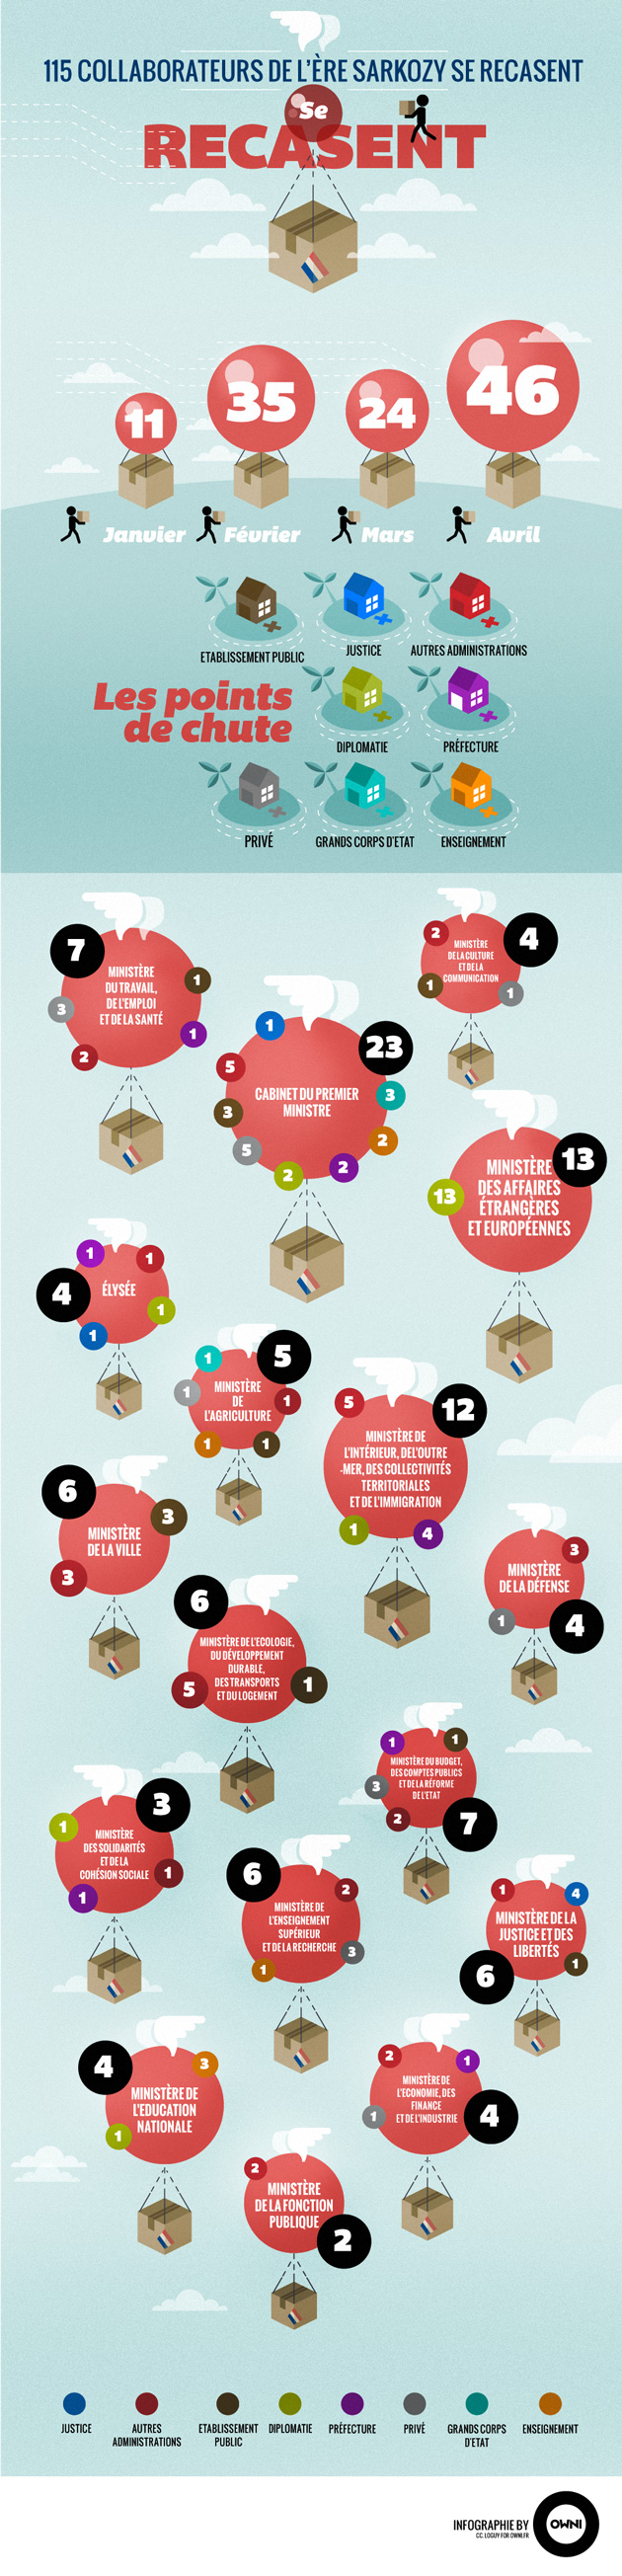 owni-infographie-cc-Loguy-collaborateurs-se-recasent-small-630px